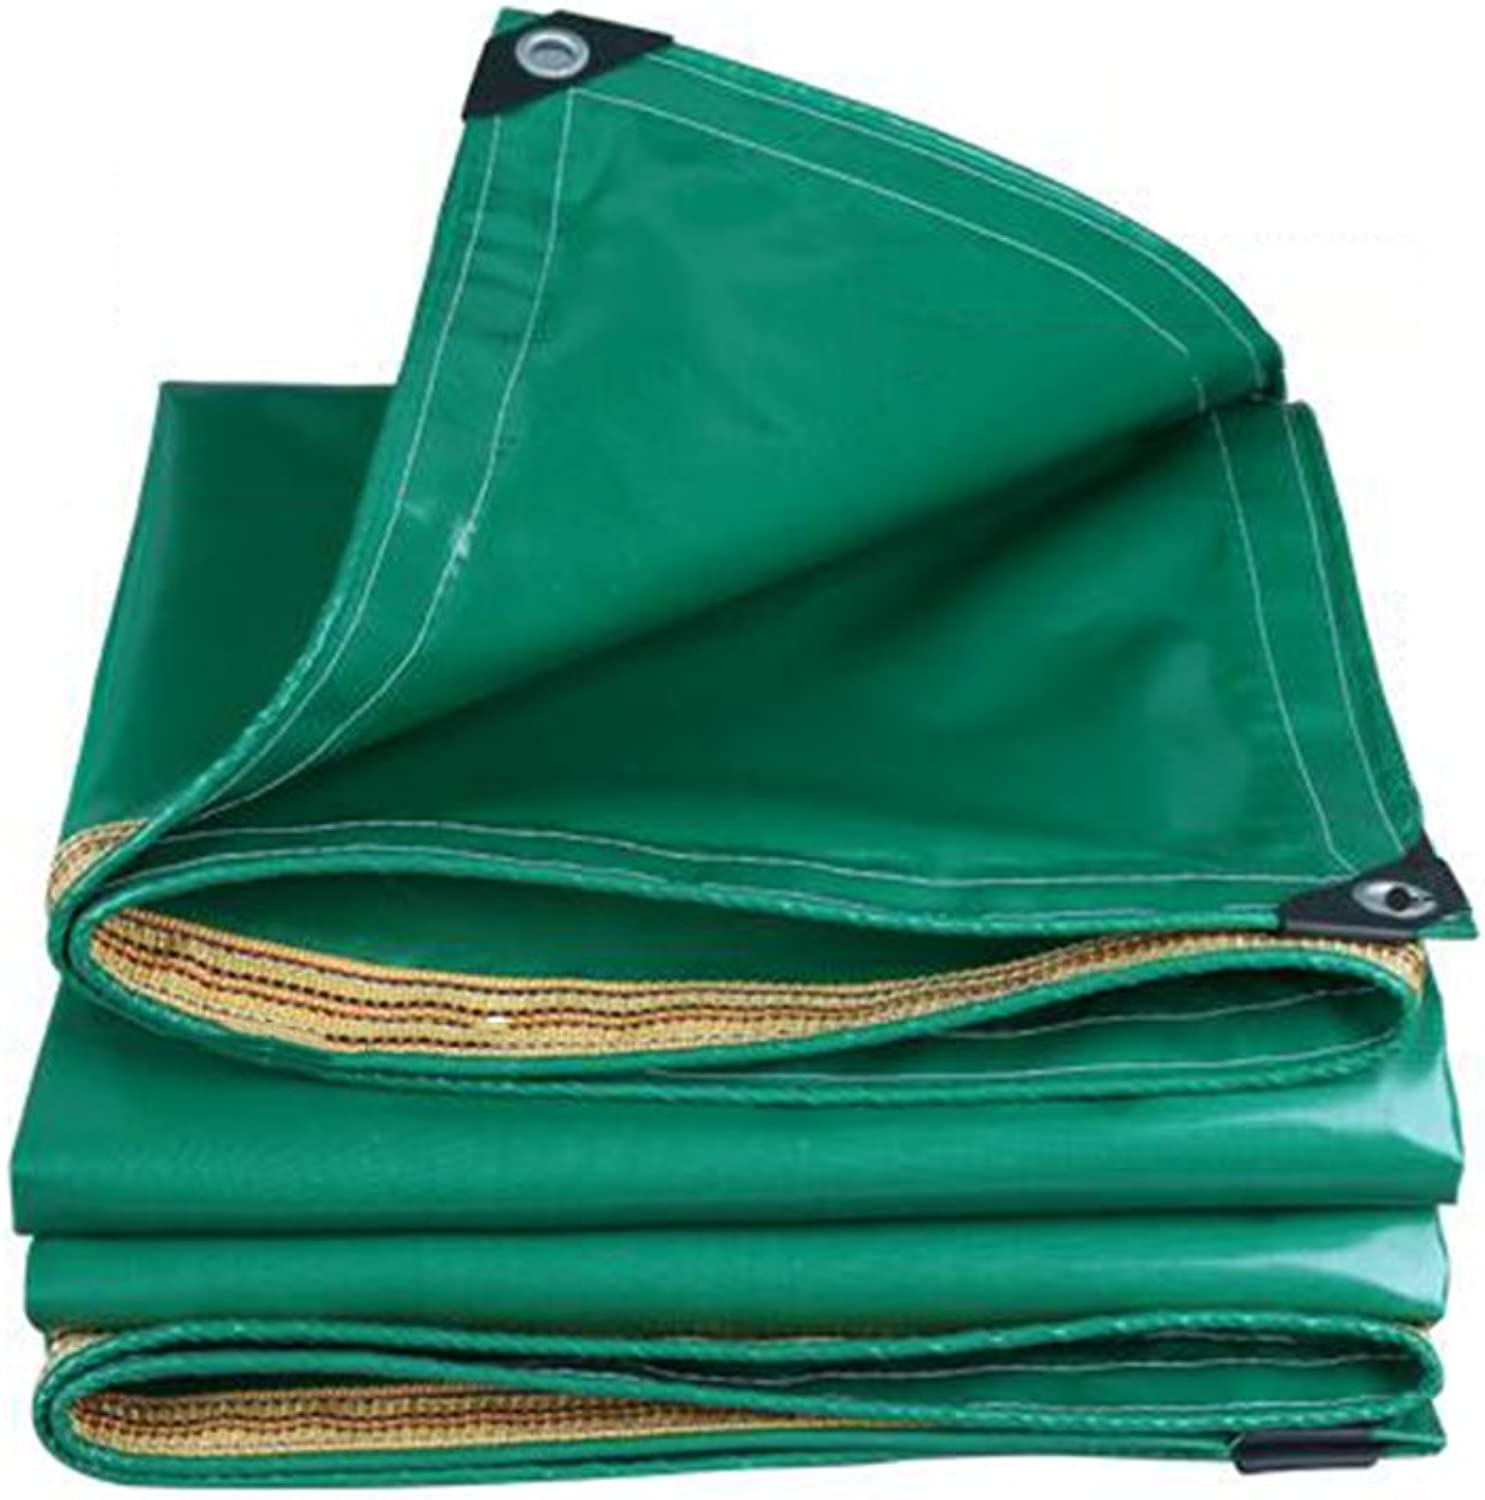 ZEMIN Tarpaulin Waterproof Sunscreen Tent Sheet Windproof Roof Predection Insulation Canvas Polyester, Green, 350G M2, 13 Sizes Available